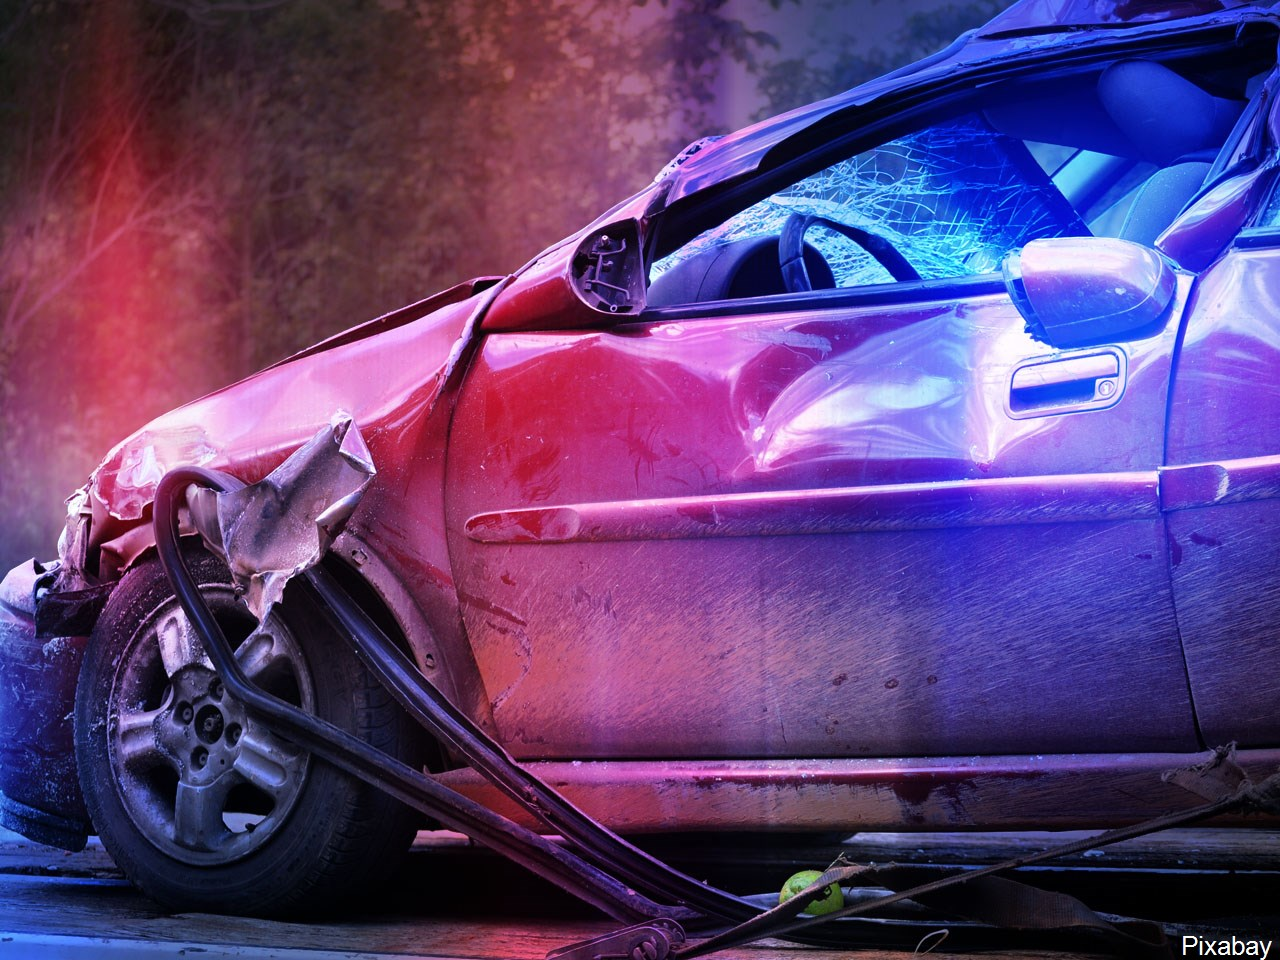 Names Released For The 72nd Traffic Fatality In Northeast El Paso